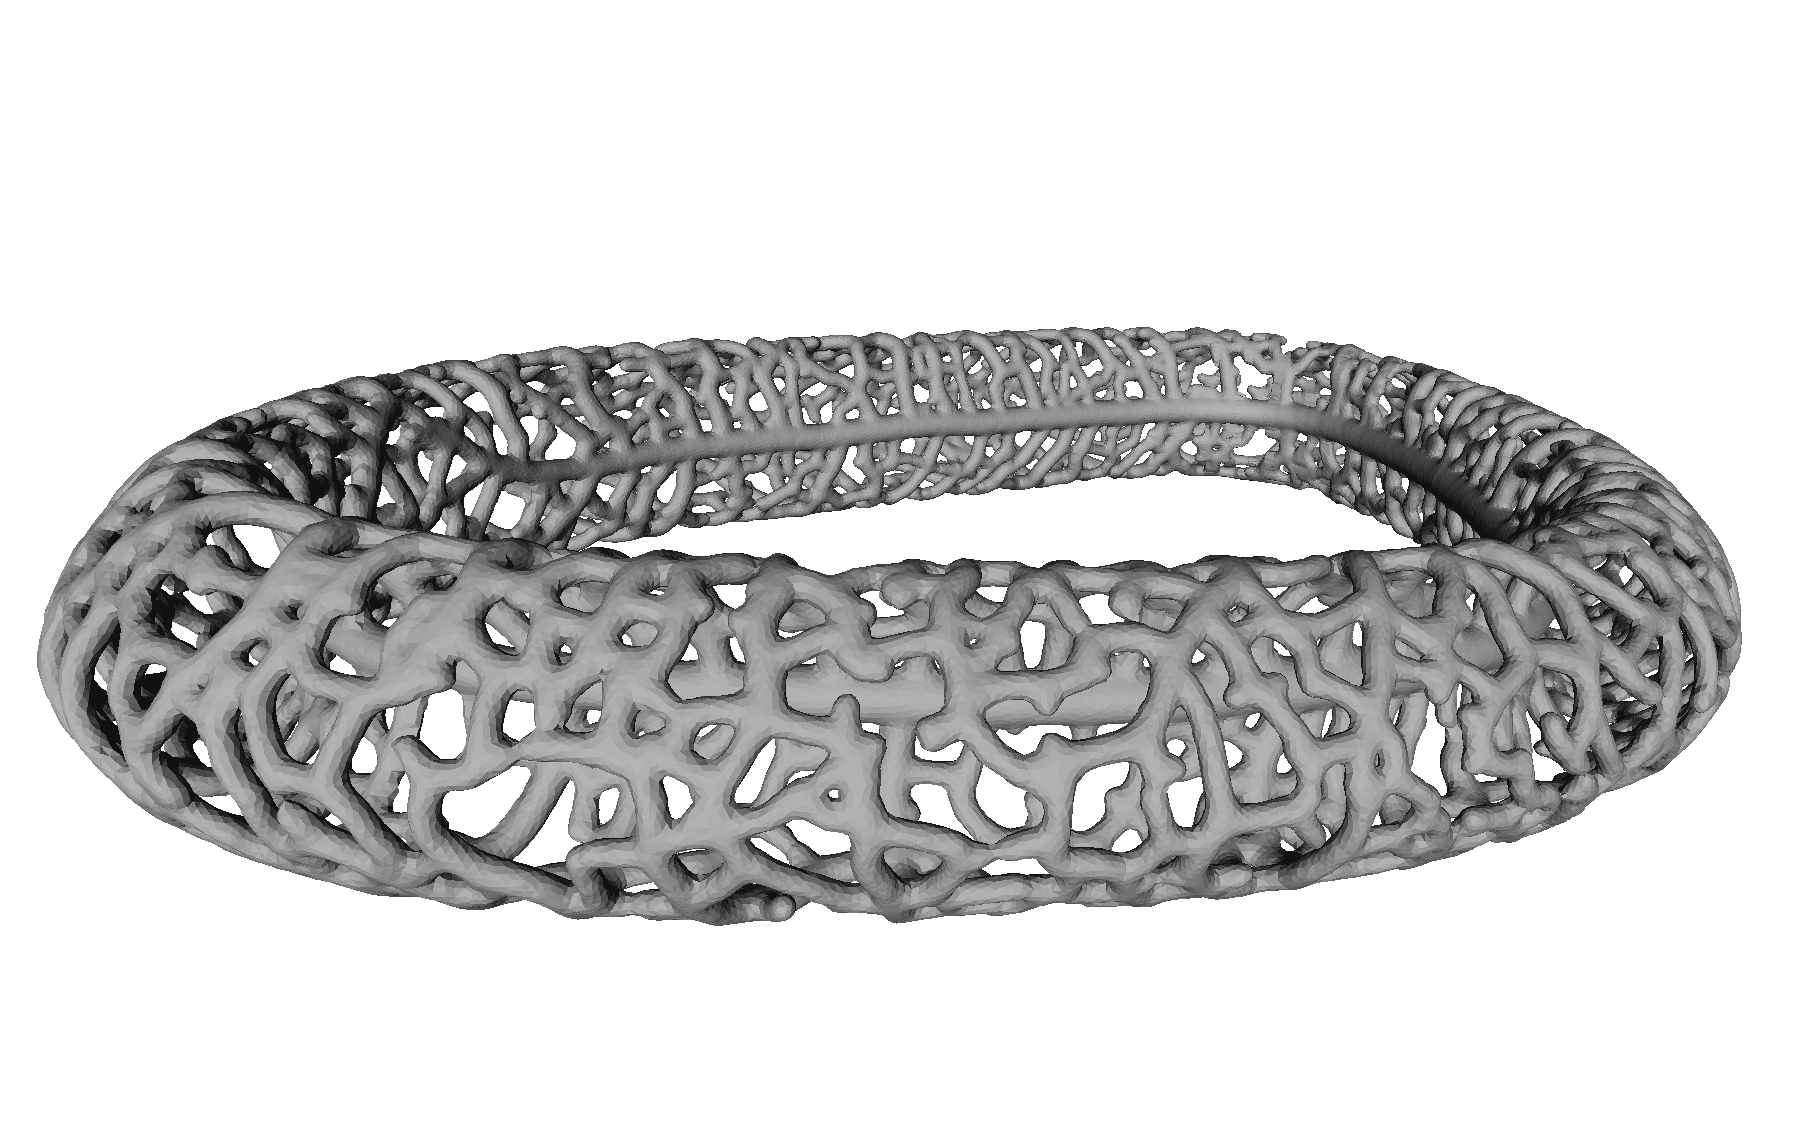 A pathological 3D model for extreme retraction